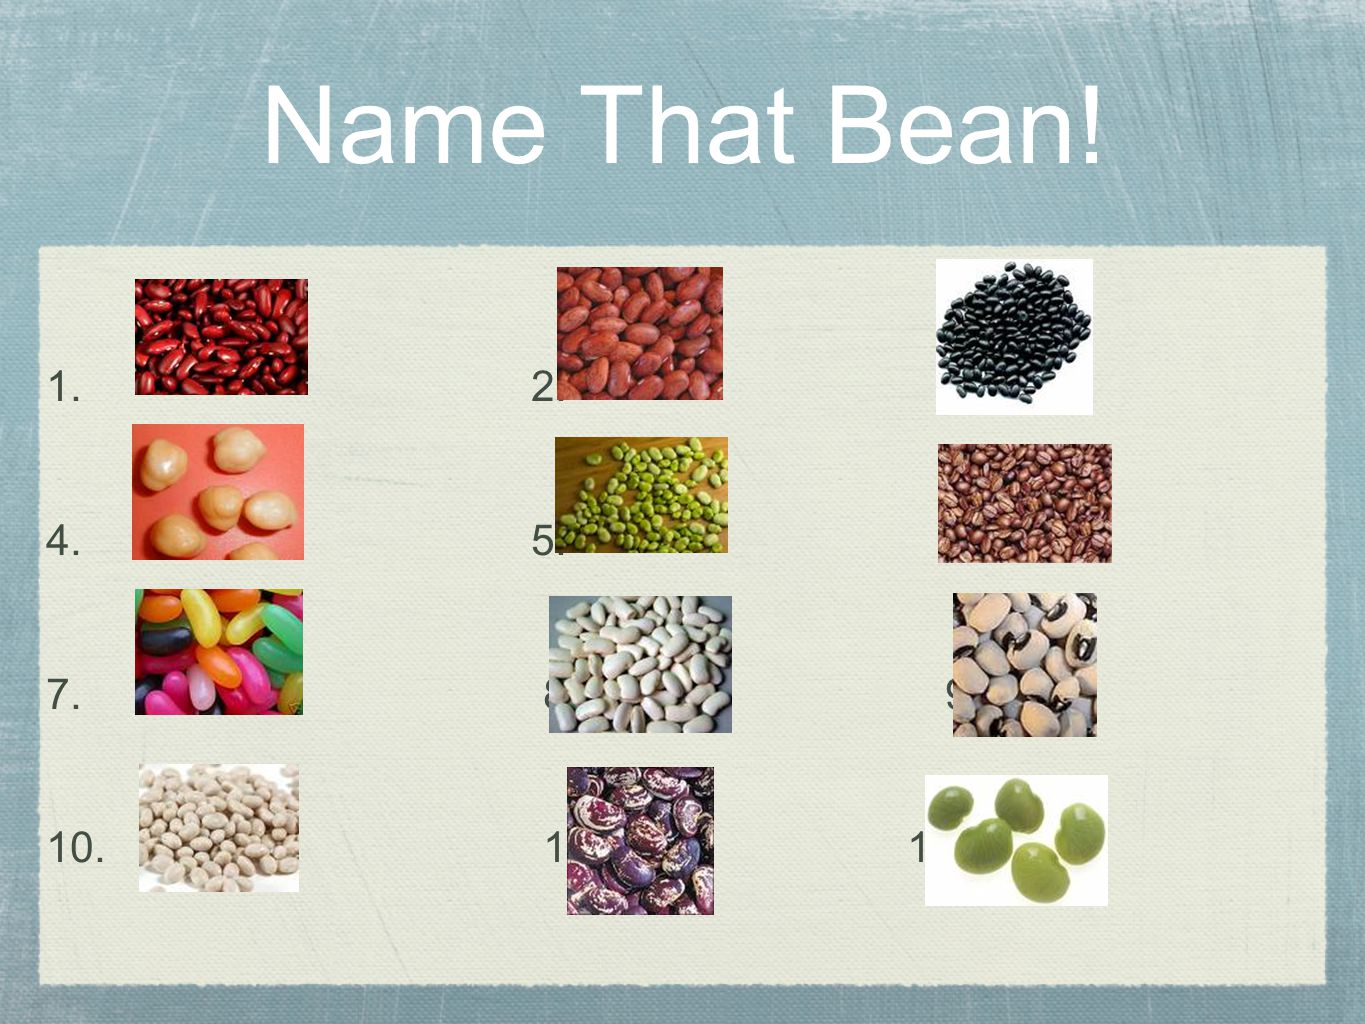 1. 2. 3. 4. 5. 6. 7. 8. 9. 10. 11. 12. Name That Bean!